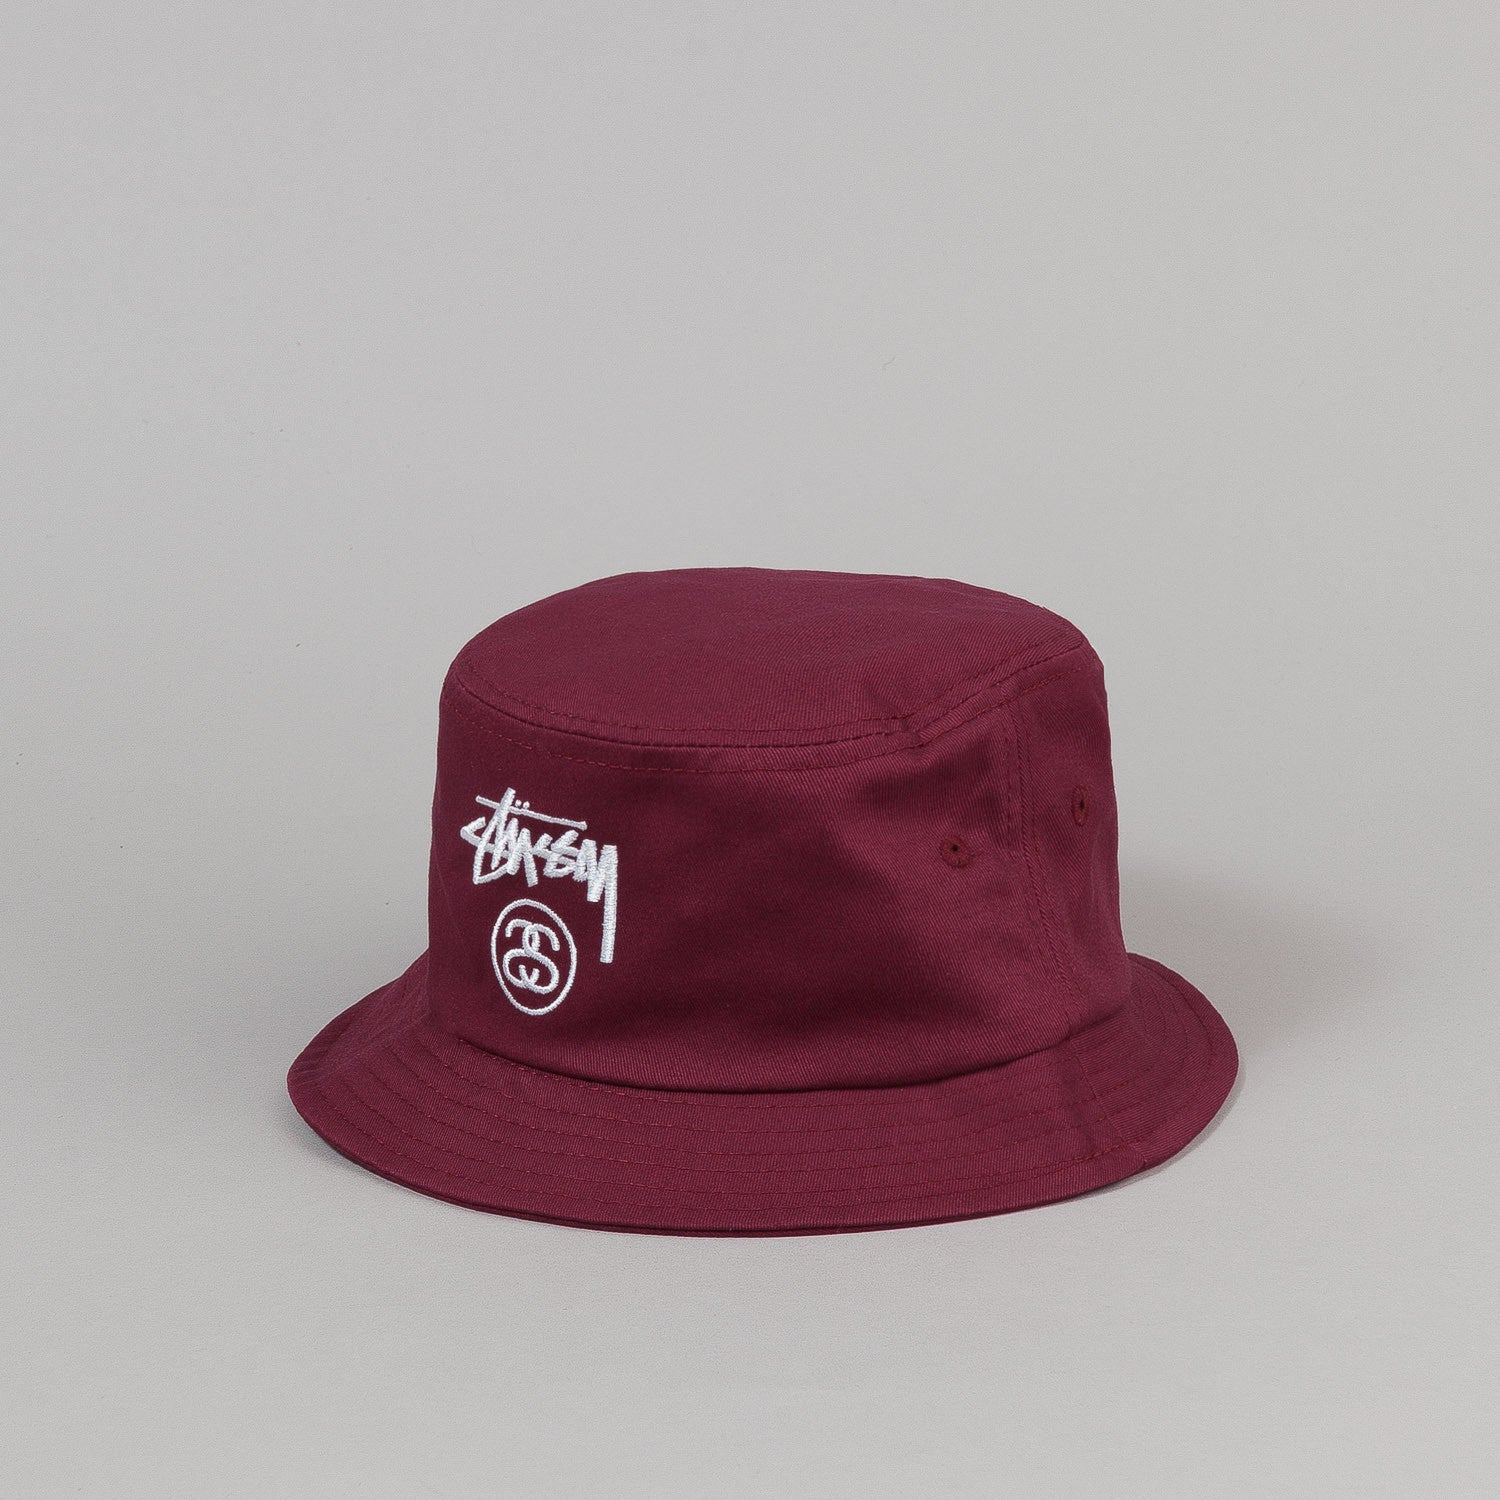 Stussy Stock Lock Bucket Hat Burgundy